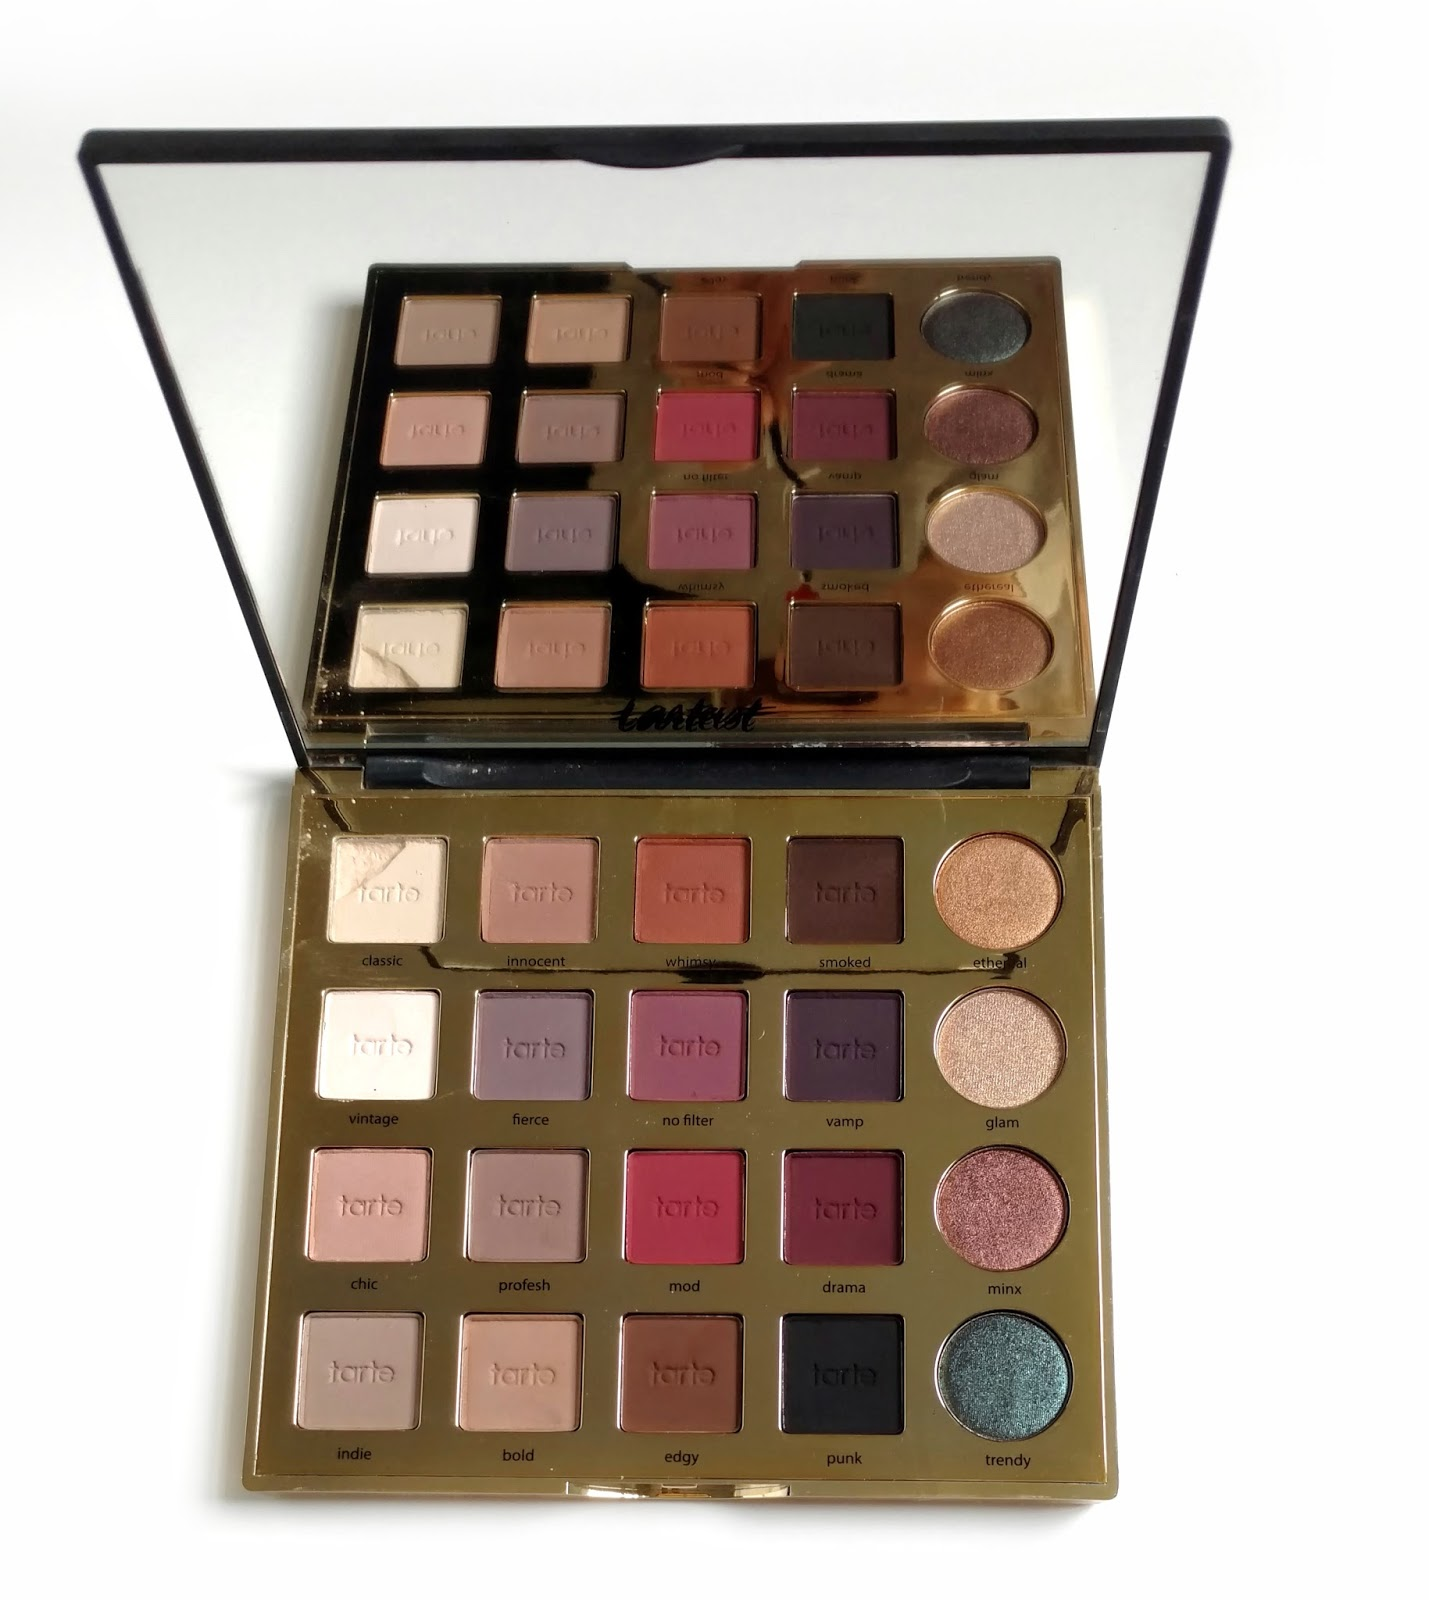 Tarte Tarteist Pro Eyeshadow Palette | Must-Have Eyeshadow Palettes | Makeup Tutorials Guide